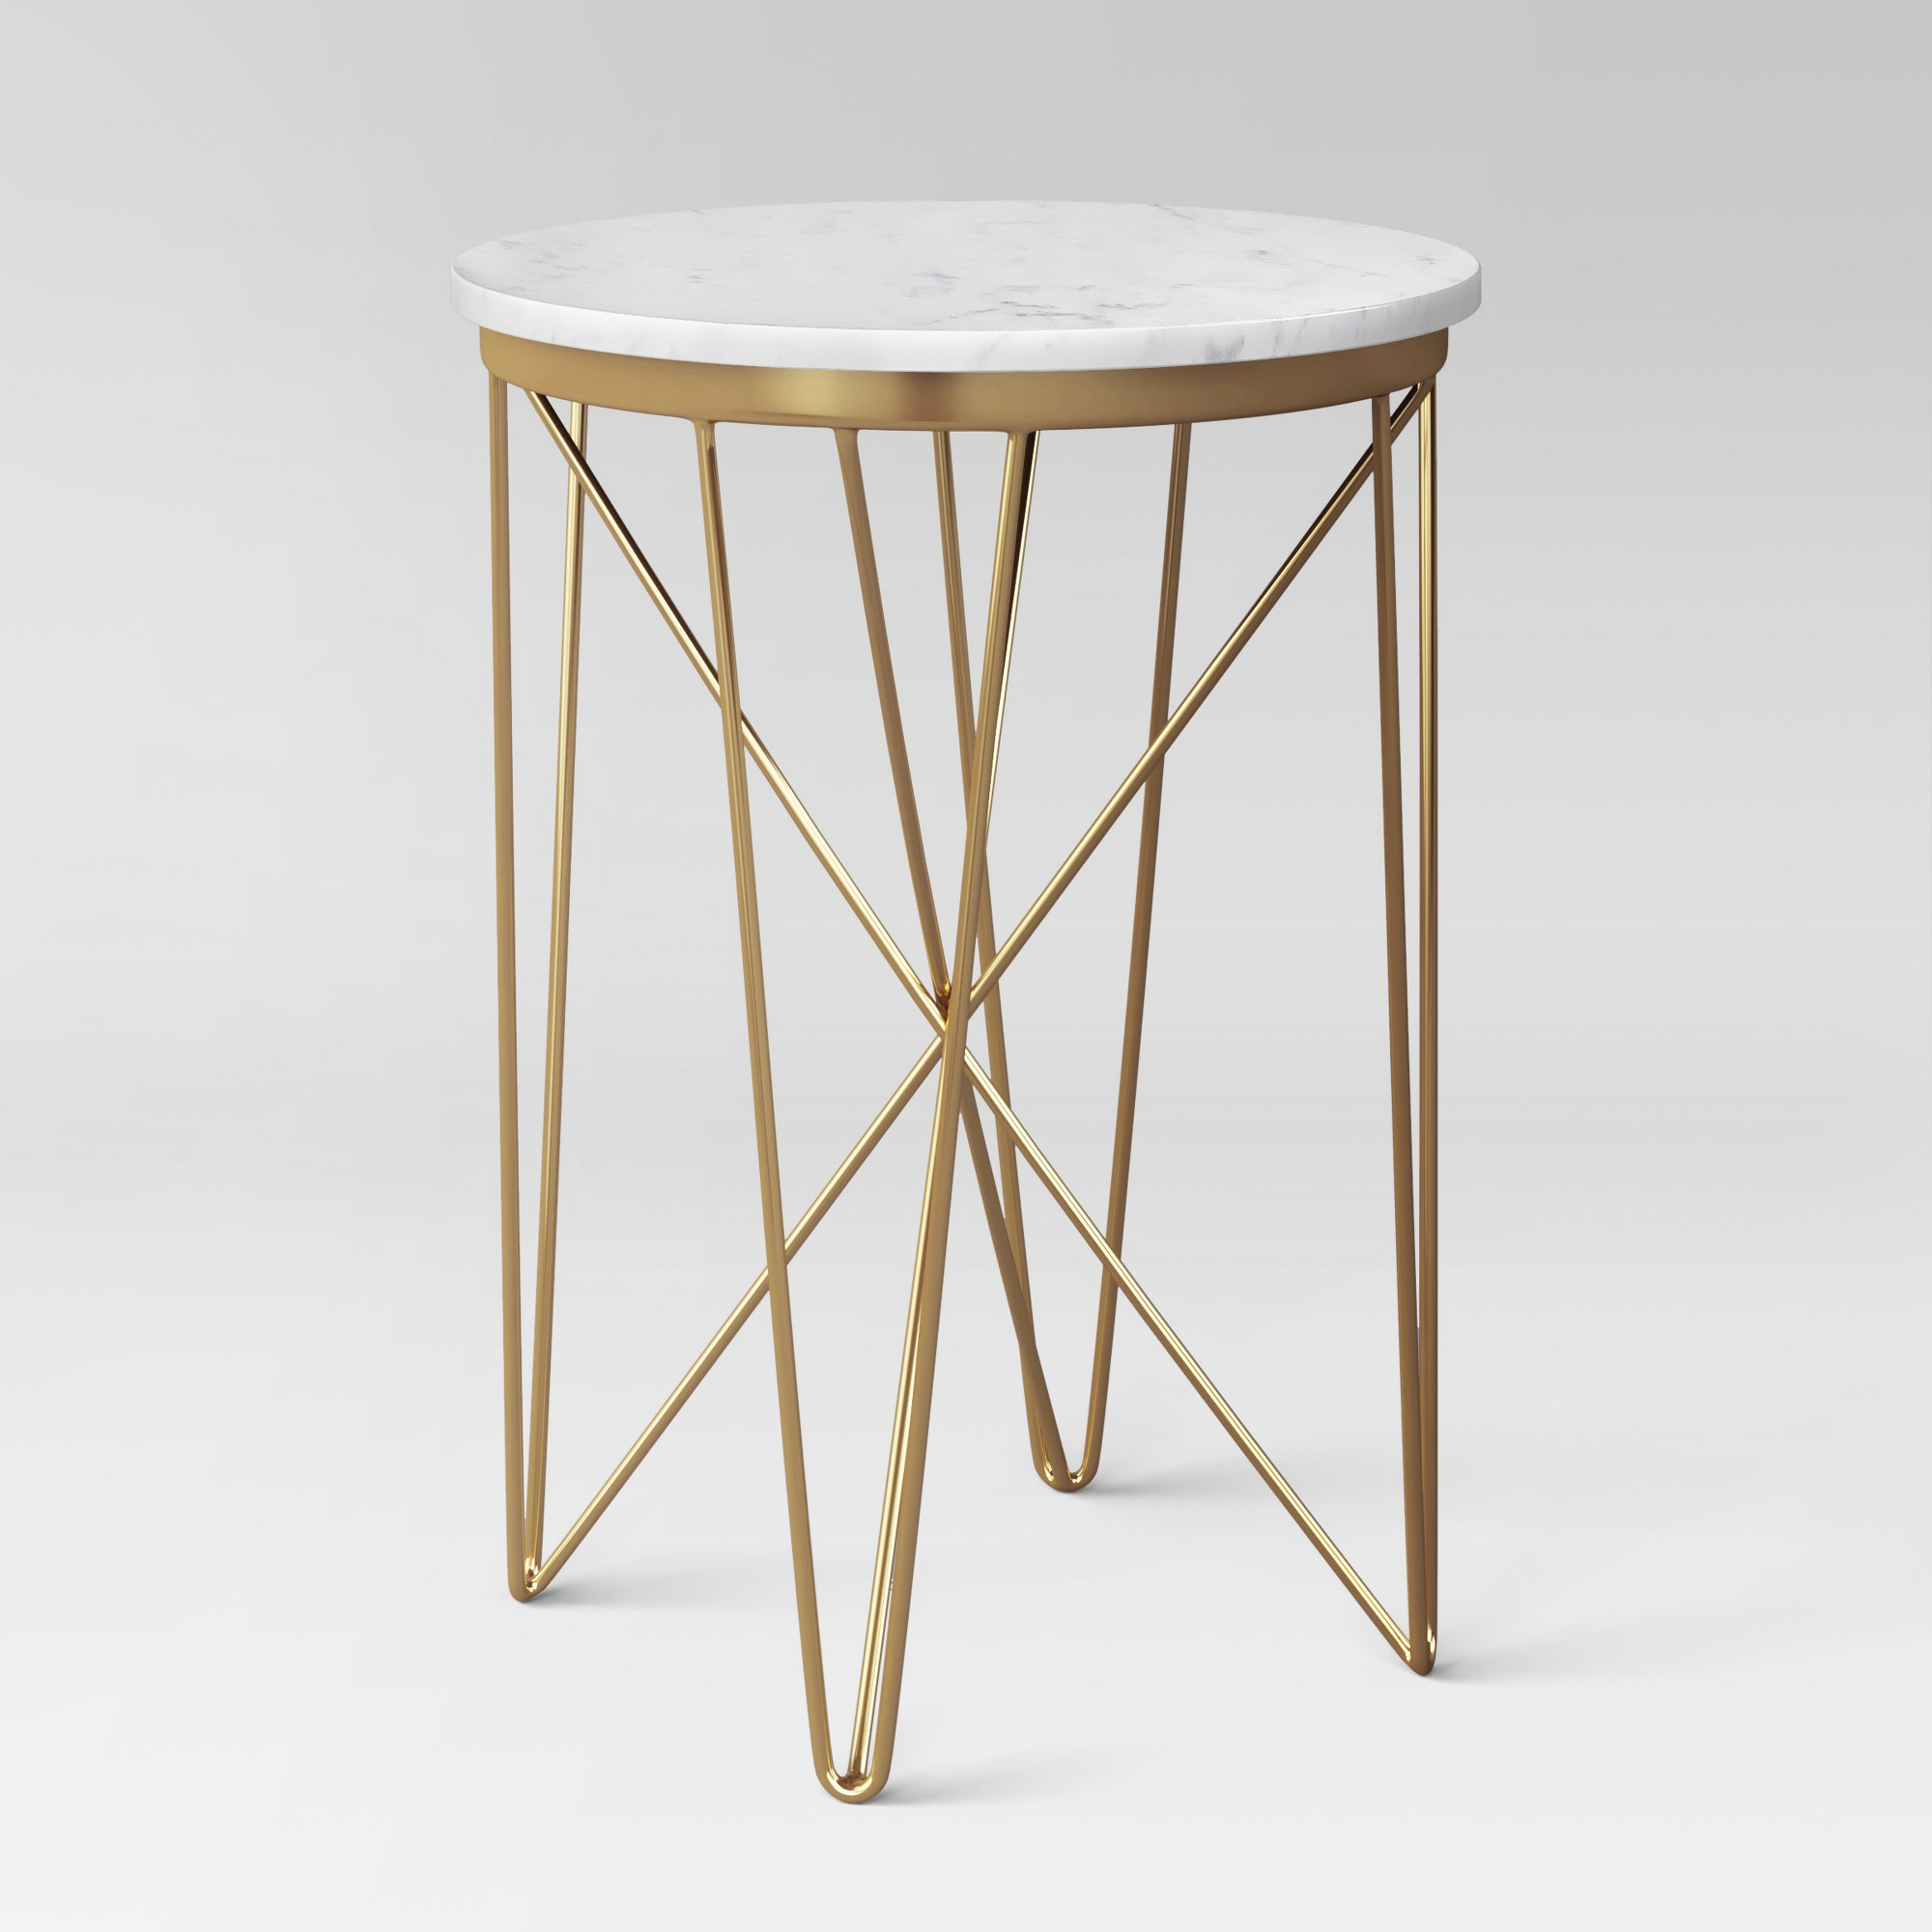 Marble Top Round Table Gold Project 62 In 2021 Marble End Tables Marble Accent Table Holiday Living Room [ 2000 x 2000 Pixel ]